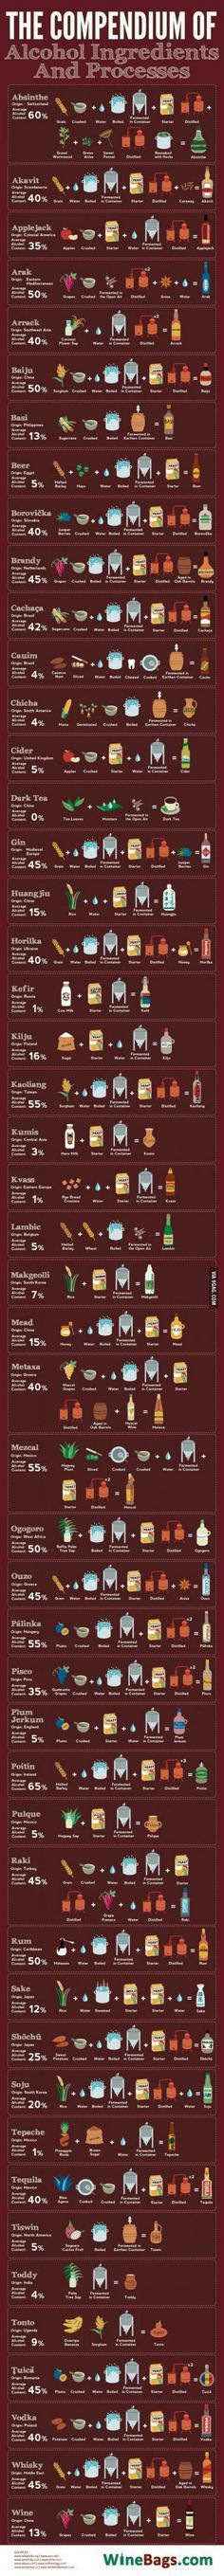 Little bit about making alcohol.